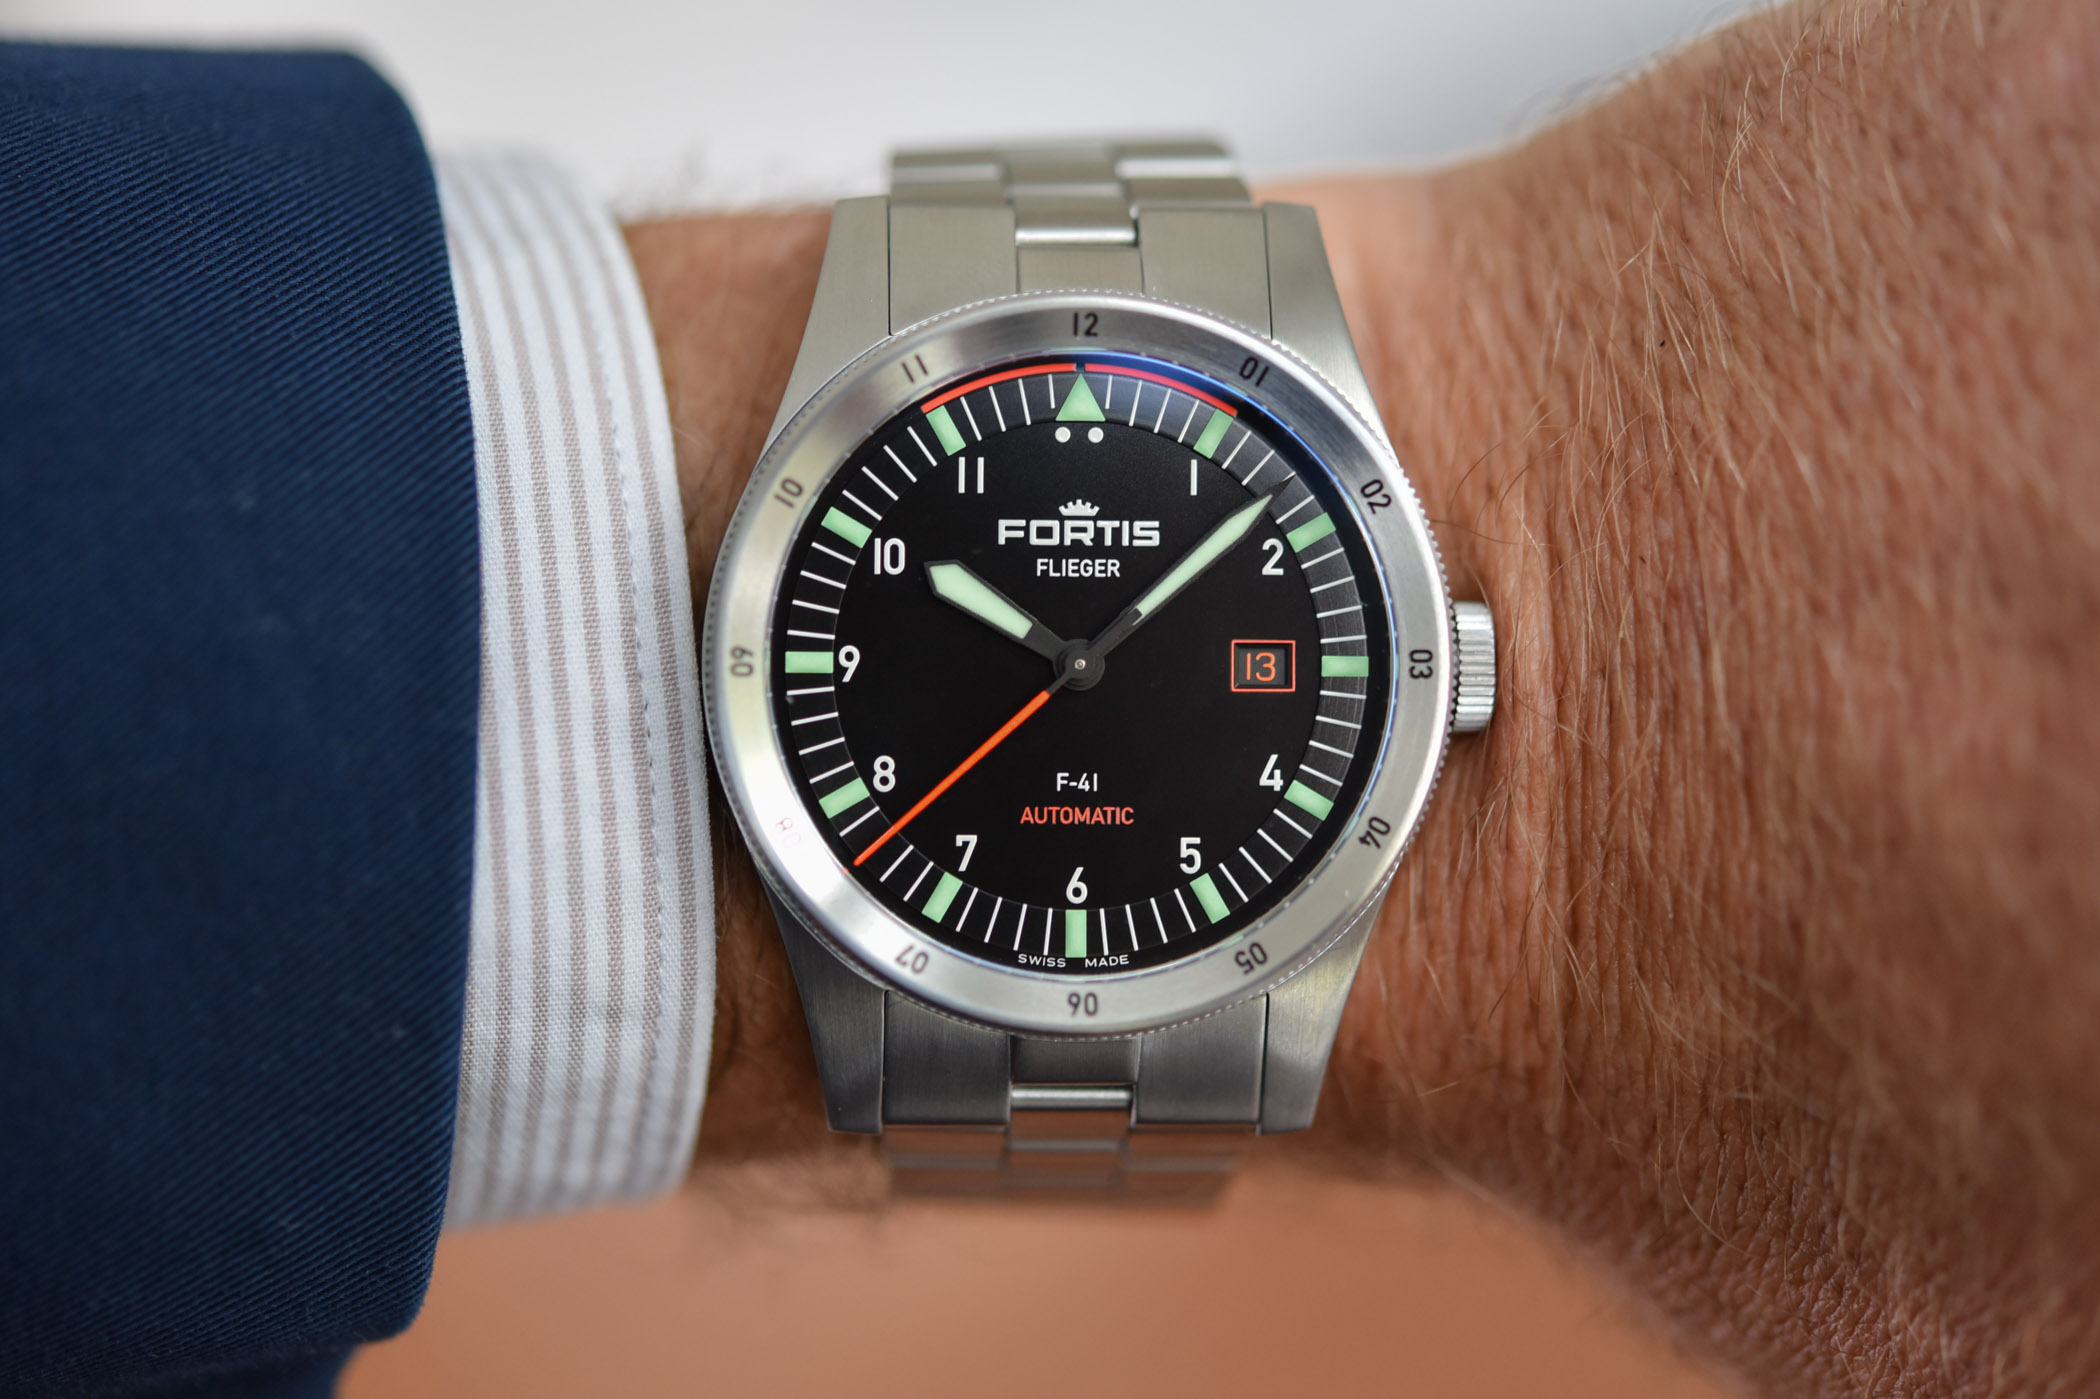 Fortis Flieger F-41 Automatic - Fortis Flieger F-39 Automatic - 3